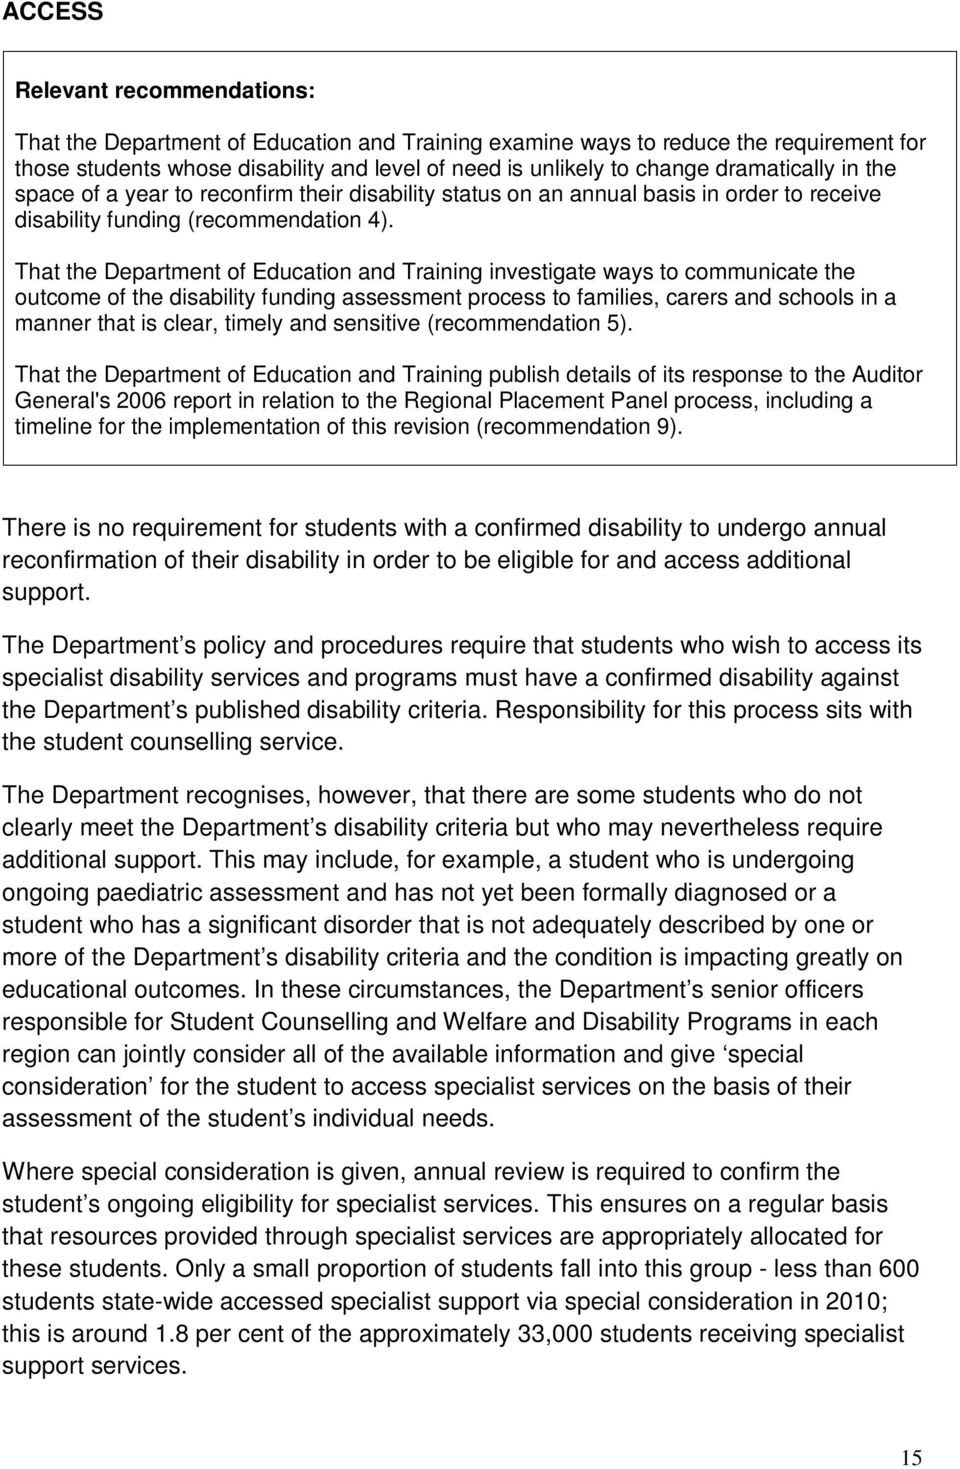 That the Department of Education and Training investigate ways to communicate the outcome of the disability funding assessment process to families, carers and schools in a manner that is clear,